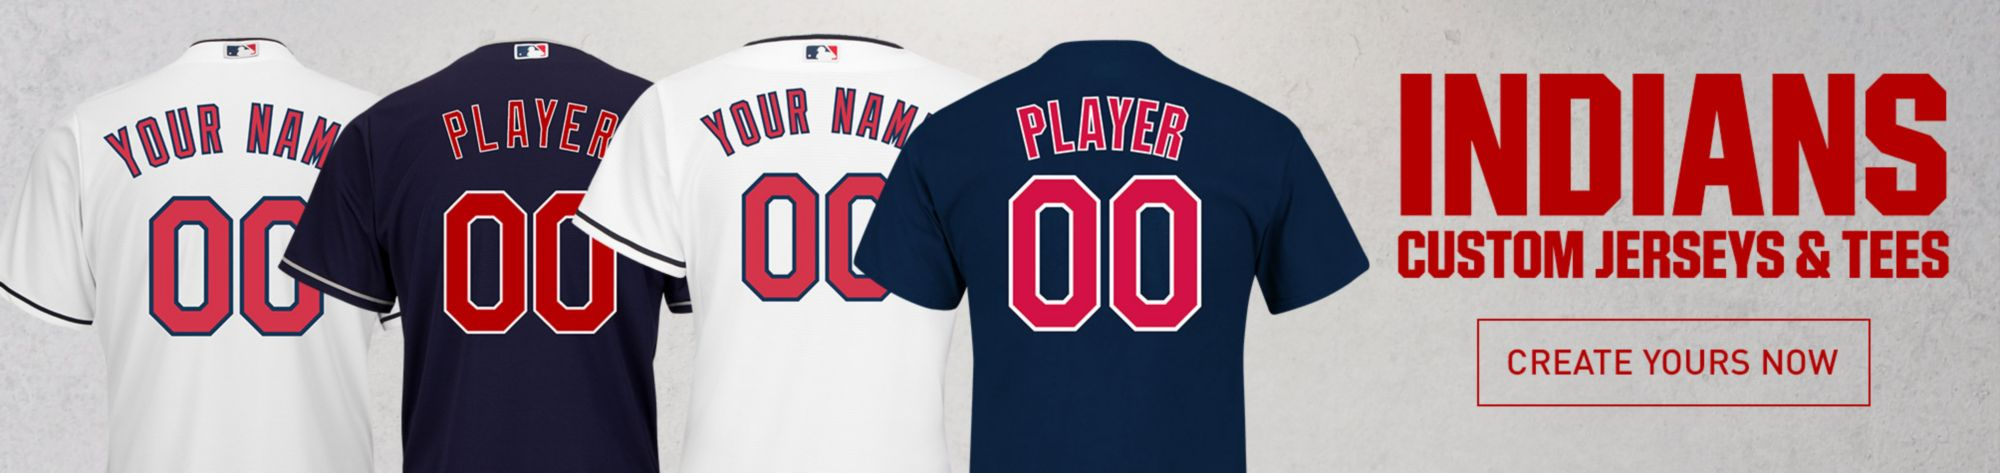 Cleveland Indians Apparel & Gear